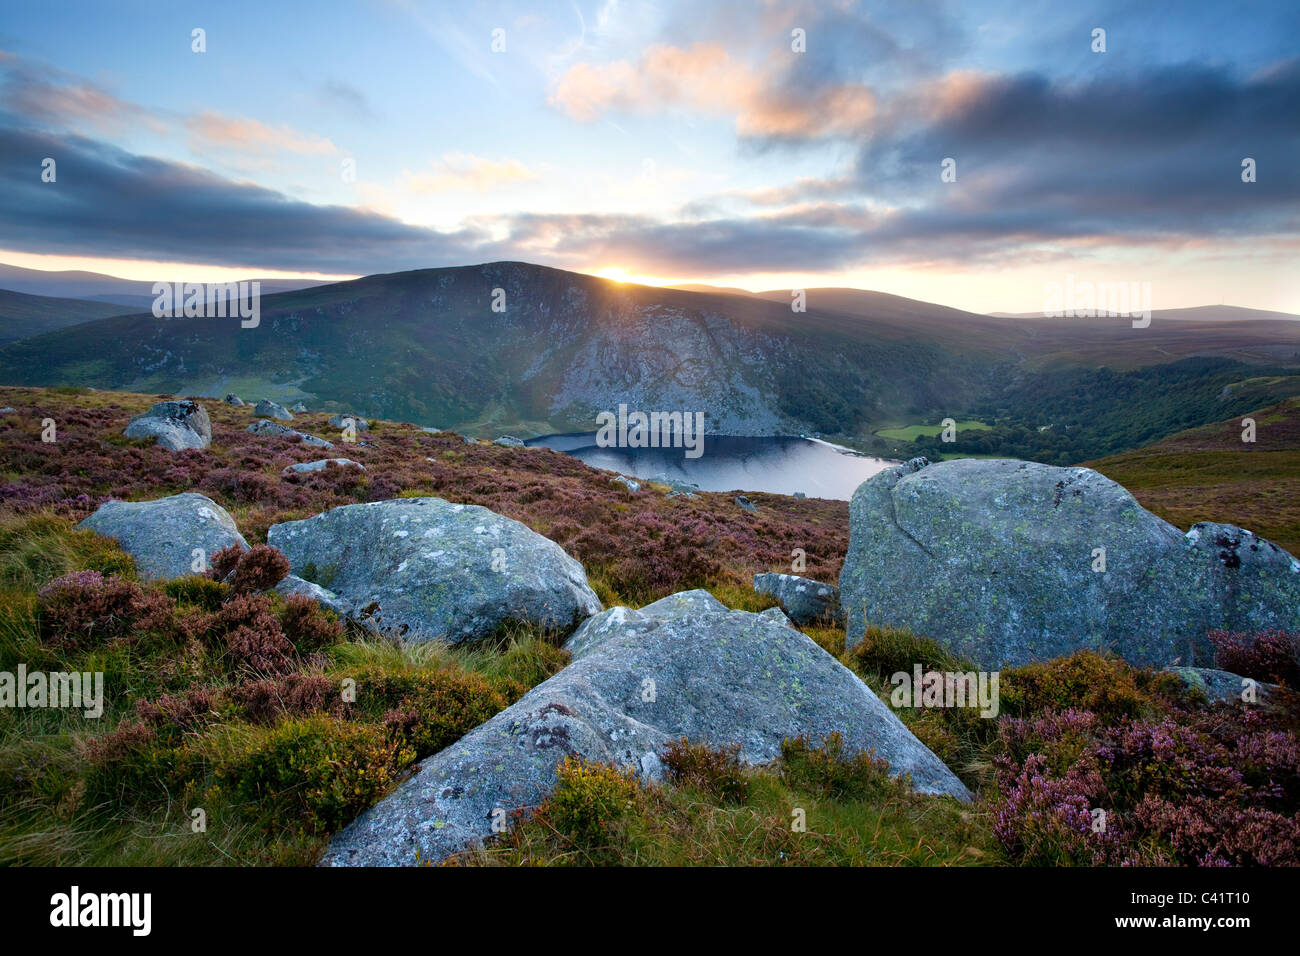 Coucher du soleil sur le Lough Tay, Parc National des Montagnes de Wicklow, comté de Wicklow, en Irlande. Photo Stock